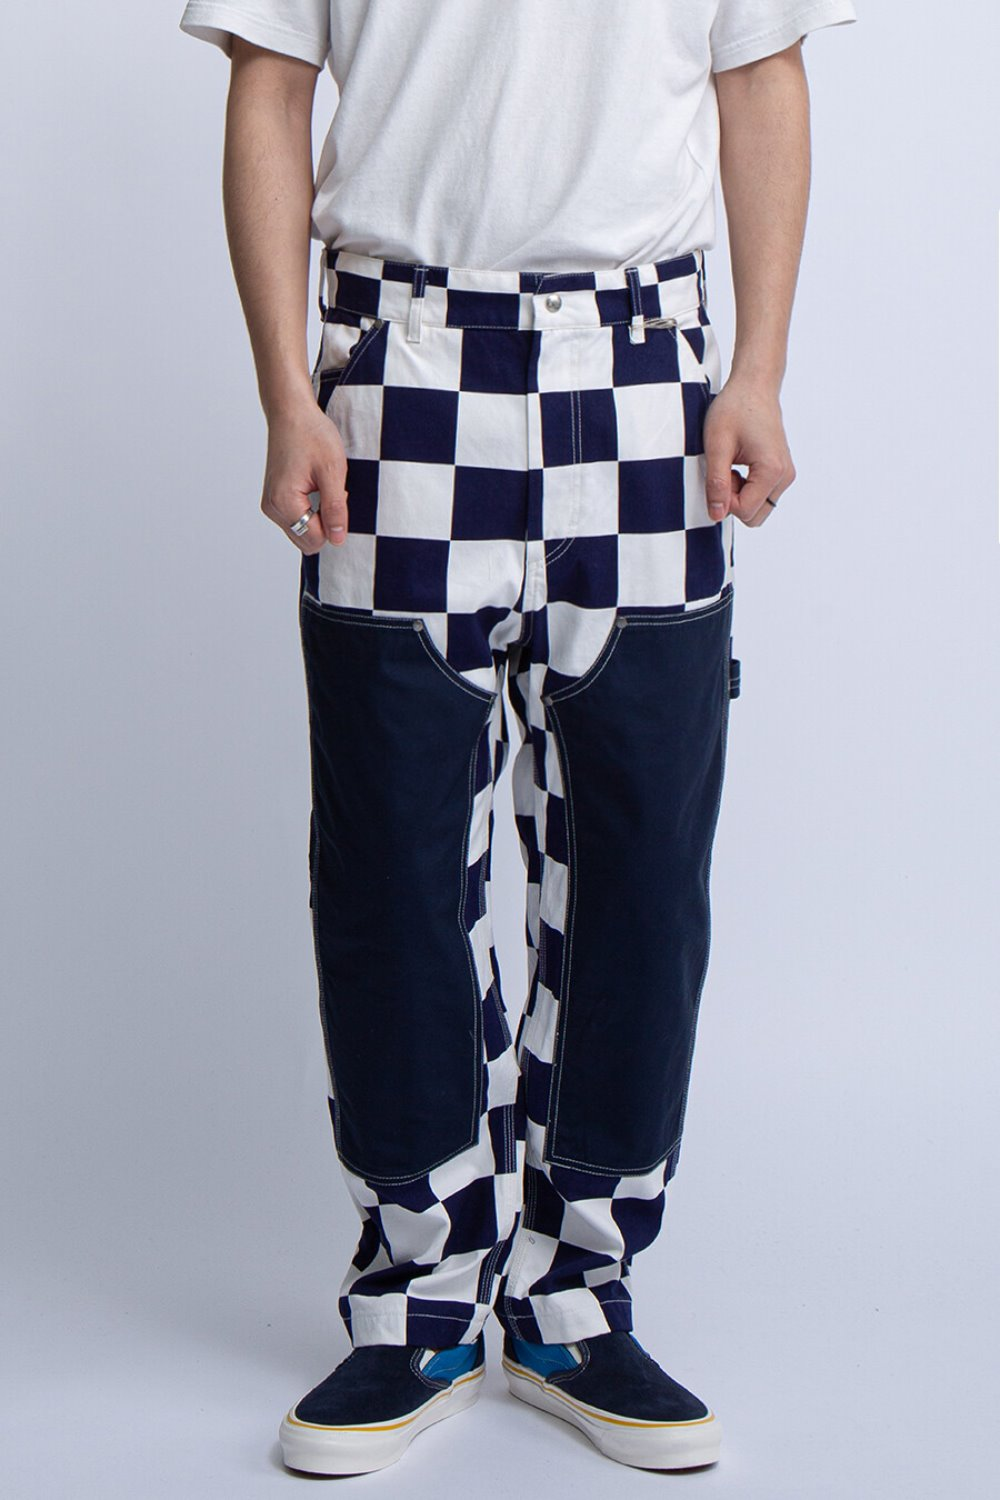 PT PANT NAVY WHITE 9oz CHECKER